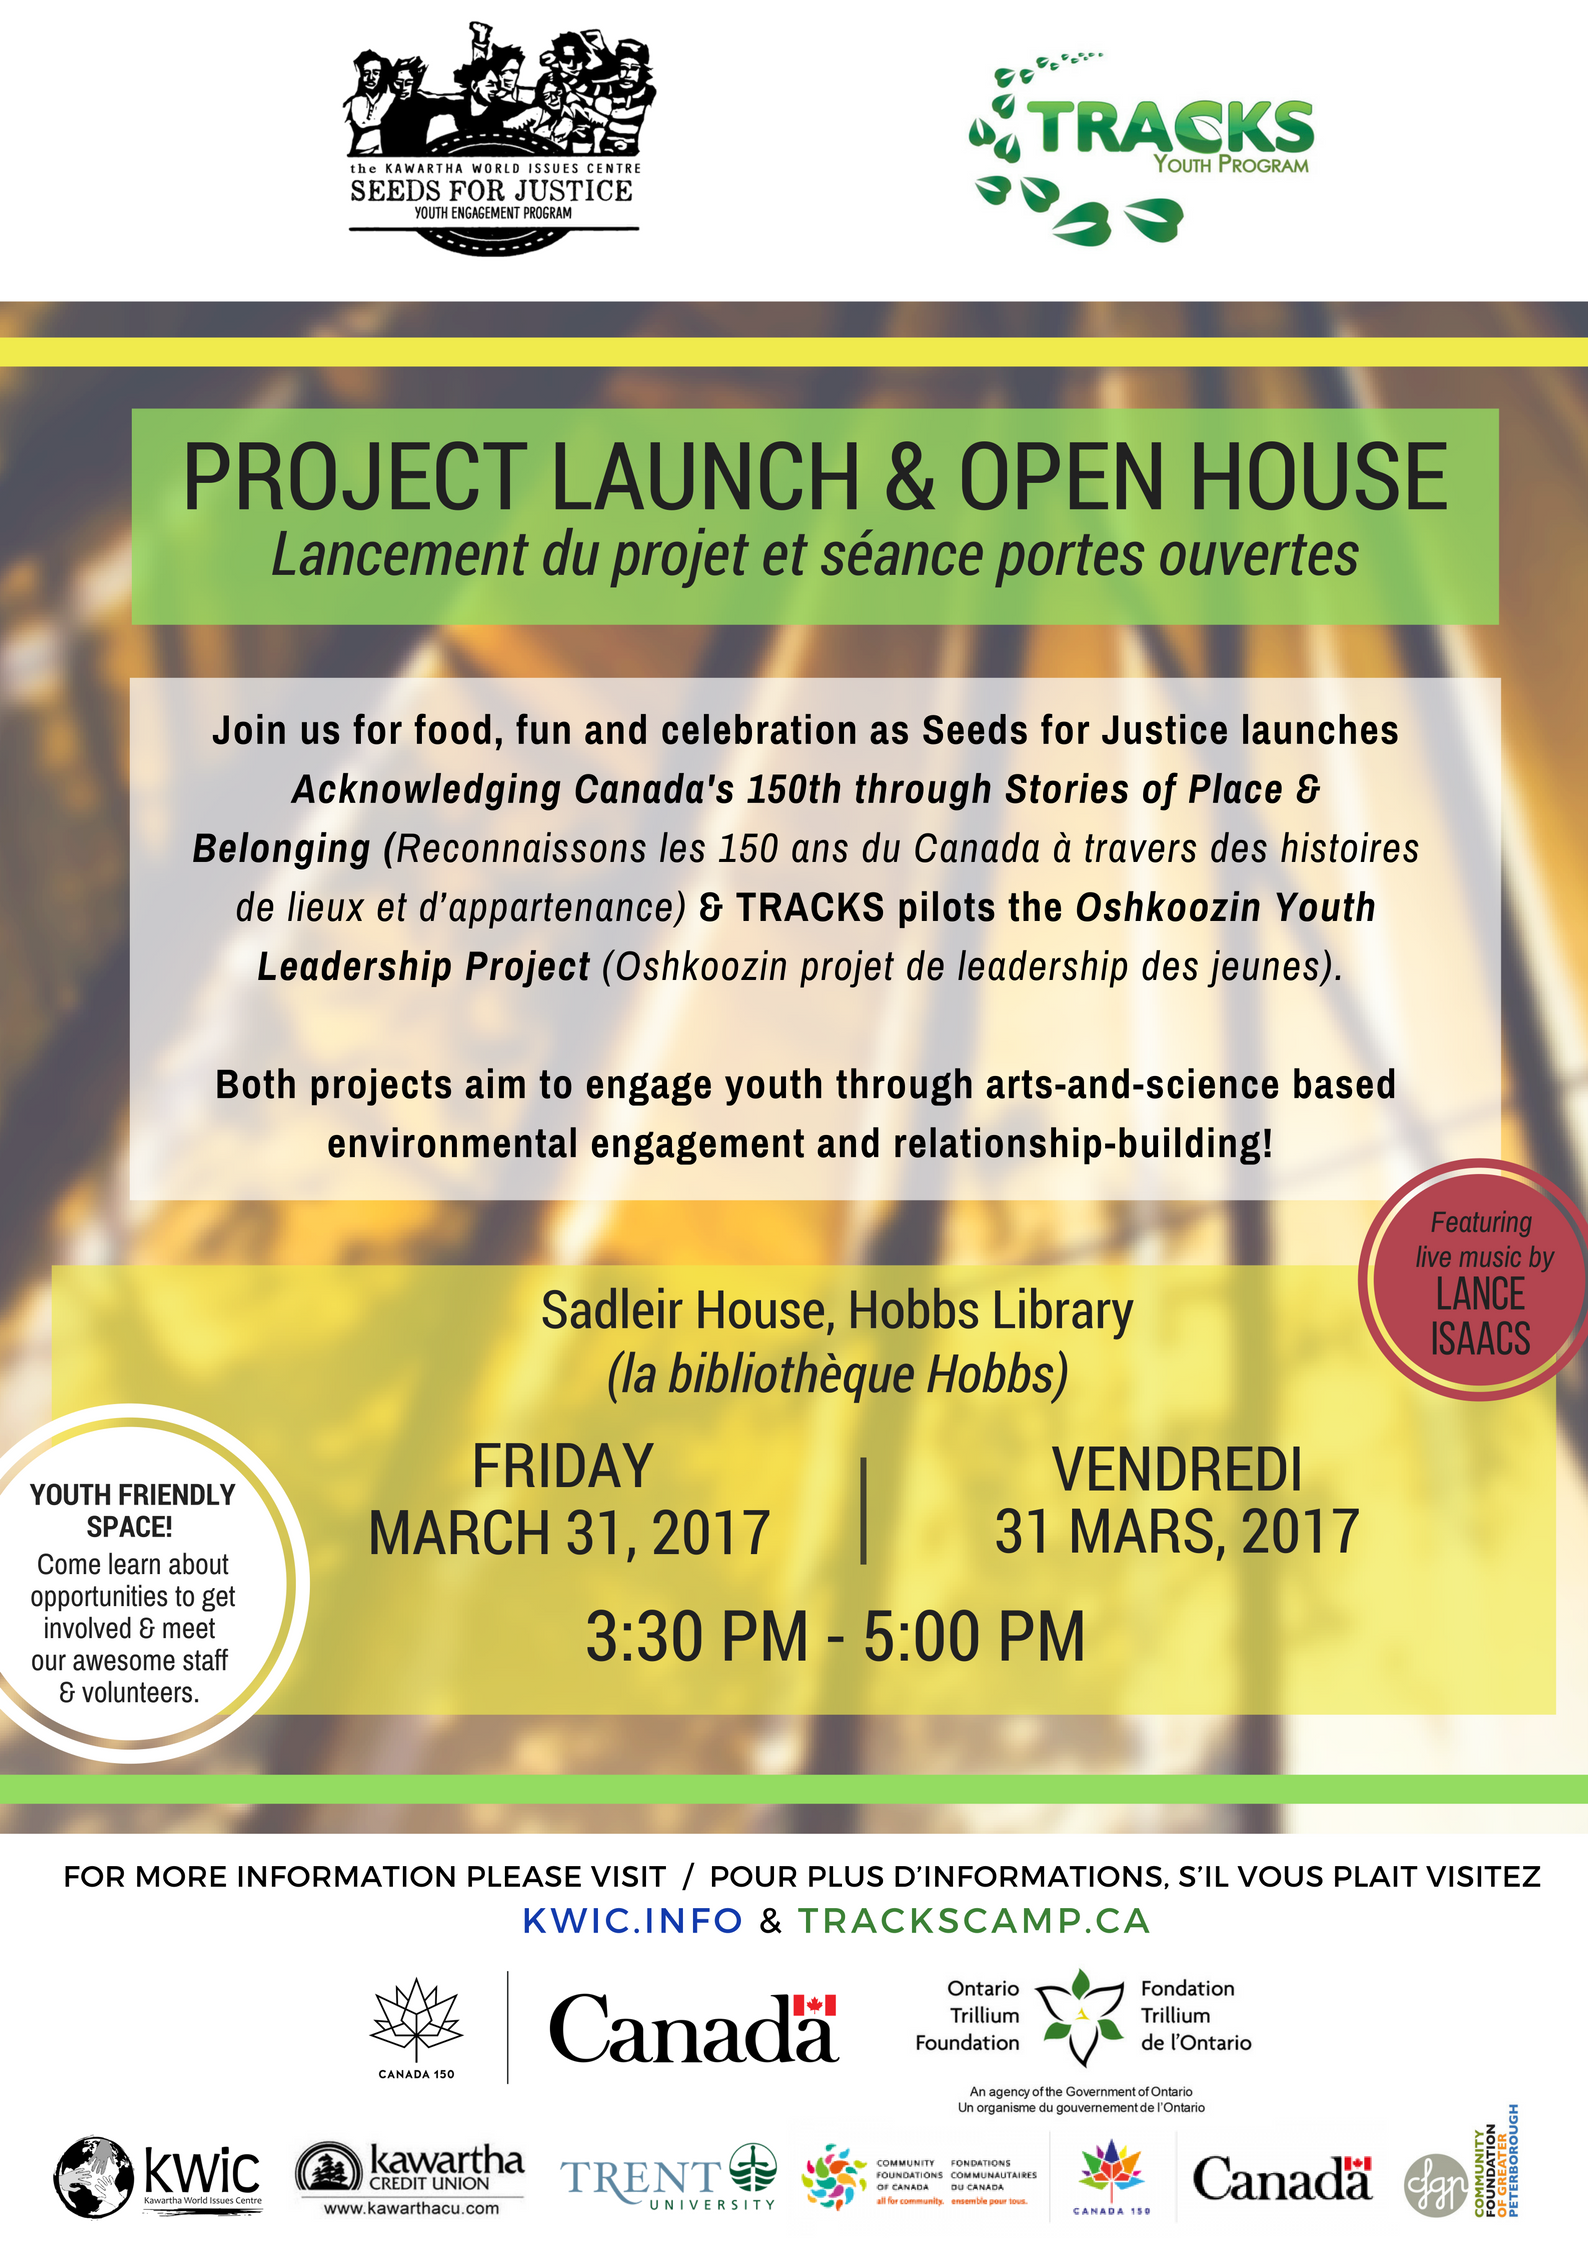 KWIC is pleased to invite community members, partners, volunteers & interested youth to an Open House and Youth Project Launch.    Friday, March 31, 2017 from 3:30 PM – 5:00 PM *remarks at 4 PM @ Hobbs Library Sadleir House